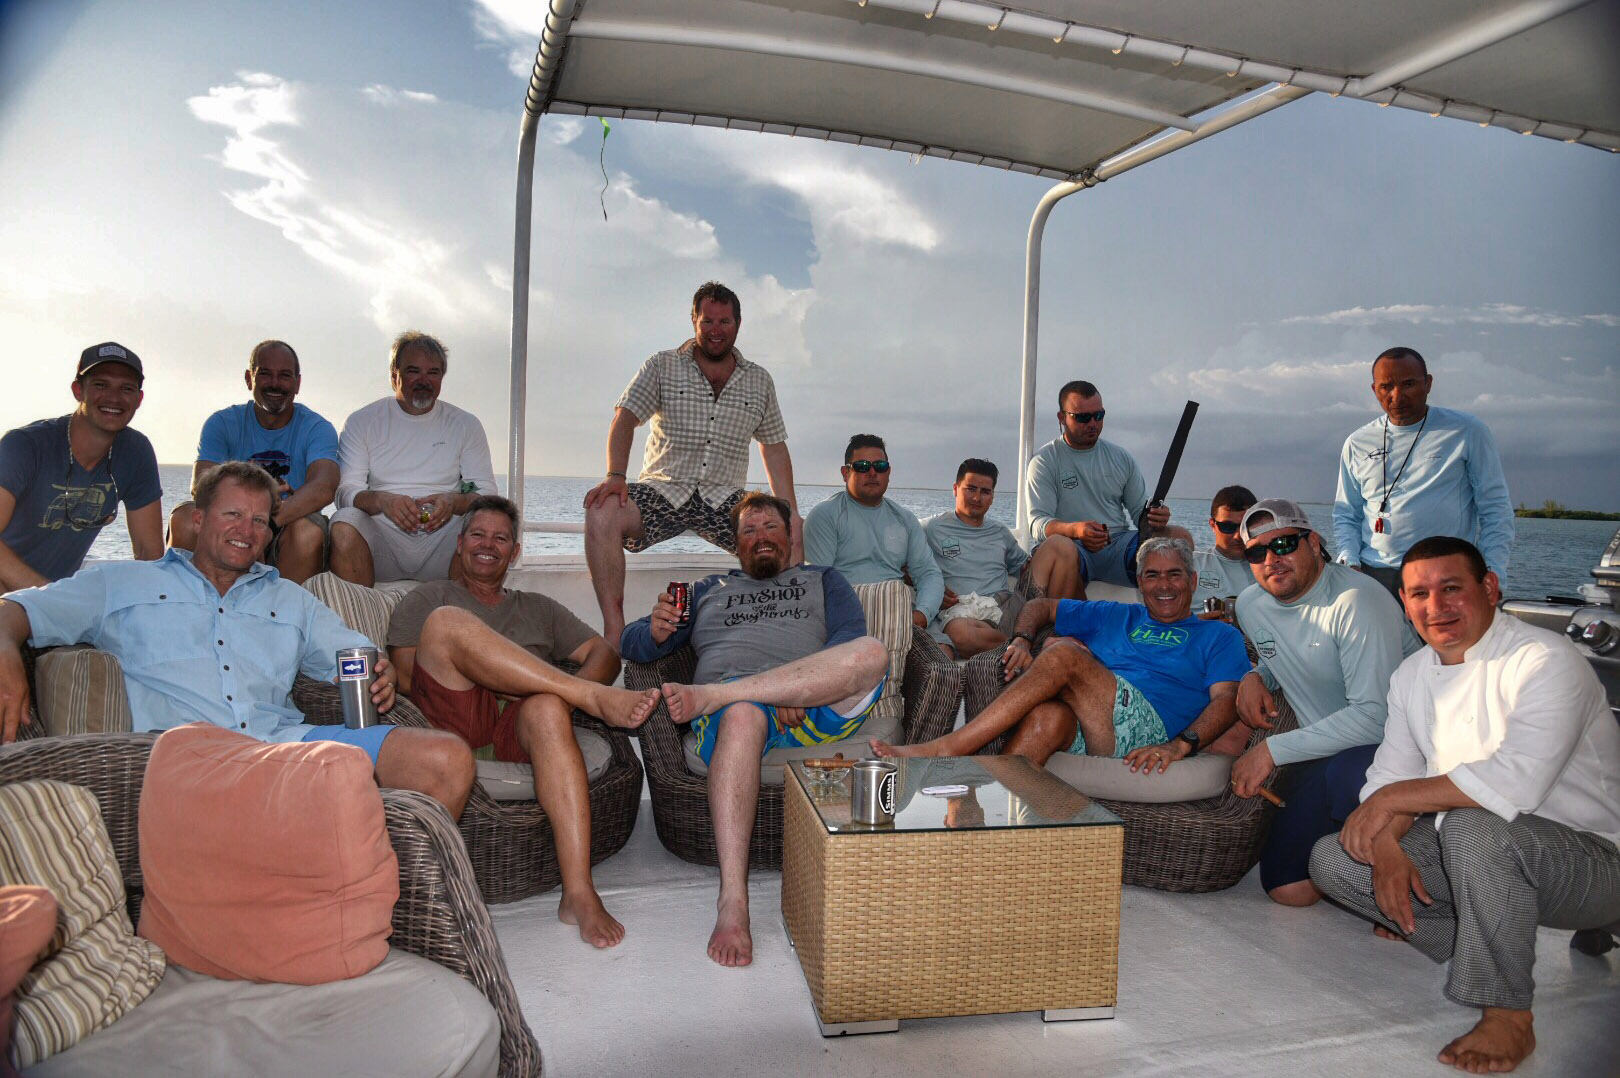 Hosted Fishing Trip Live Aboard Fishing Trip Fishing Lodge Saltwater Hosted Trip Destination